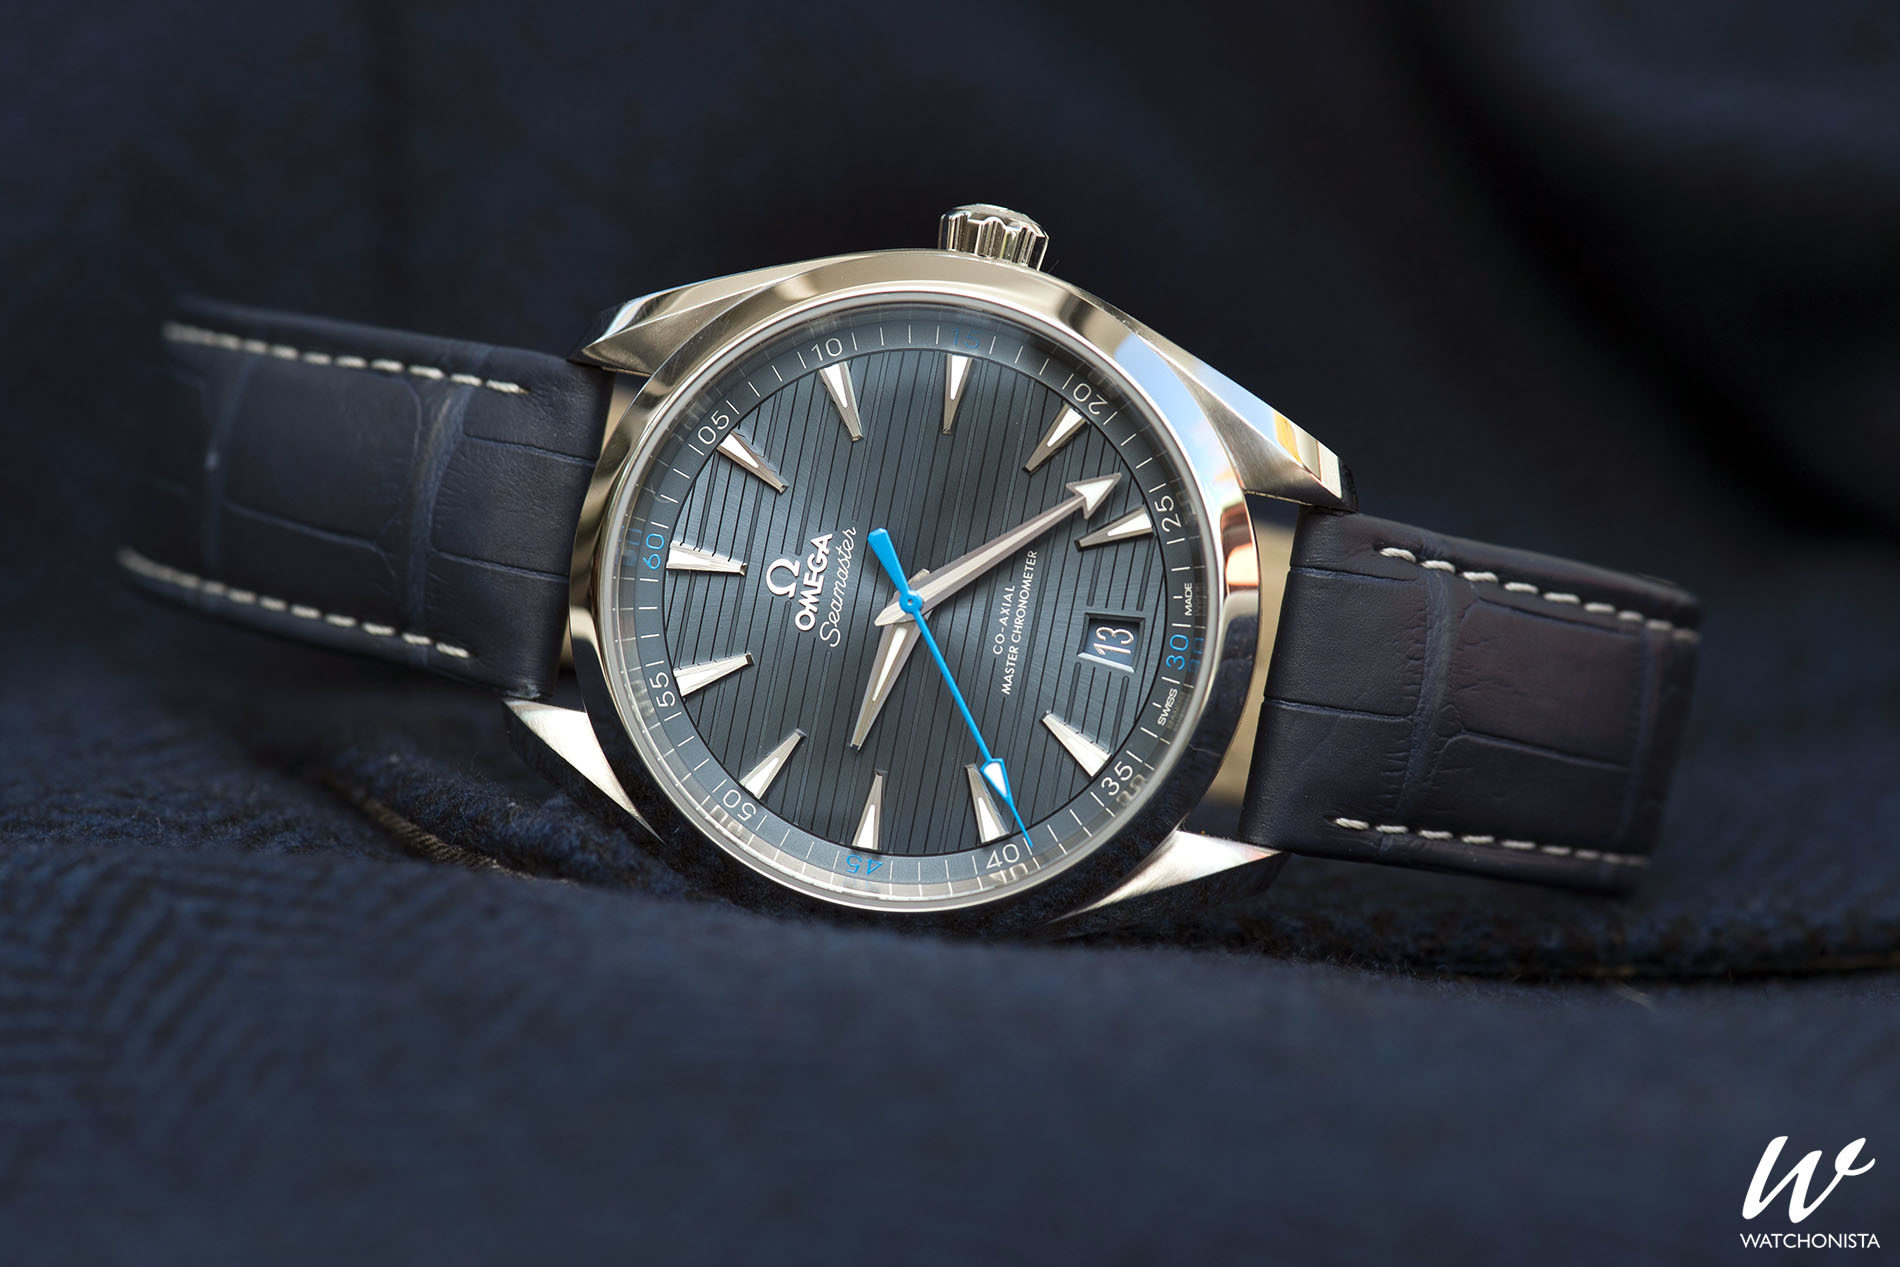 d7189a547c5 OMEGA Seamaster Aqua Terra  How to Reconcile Sportiness and Elegance ...